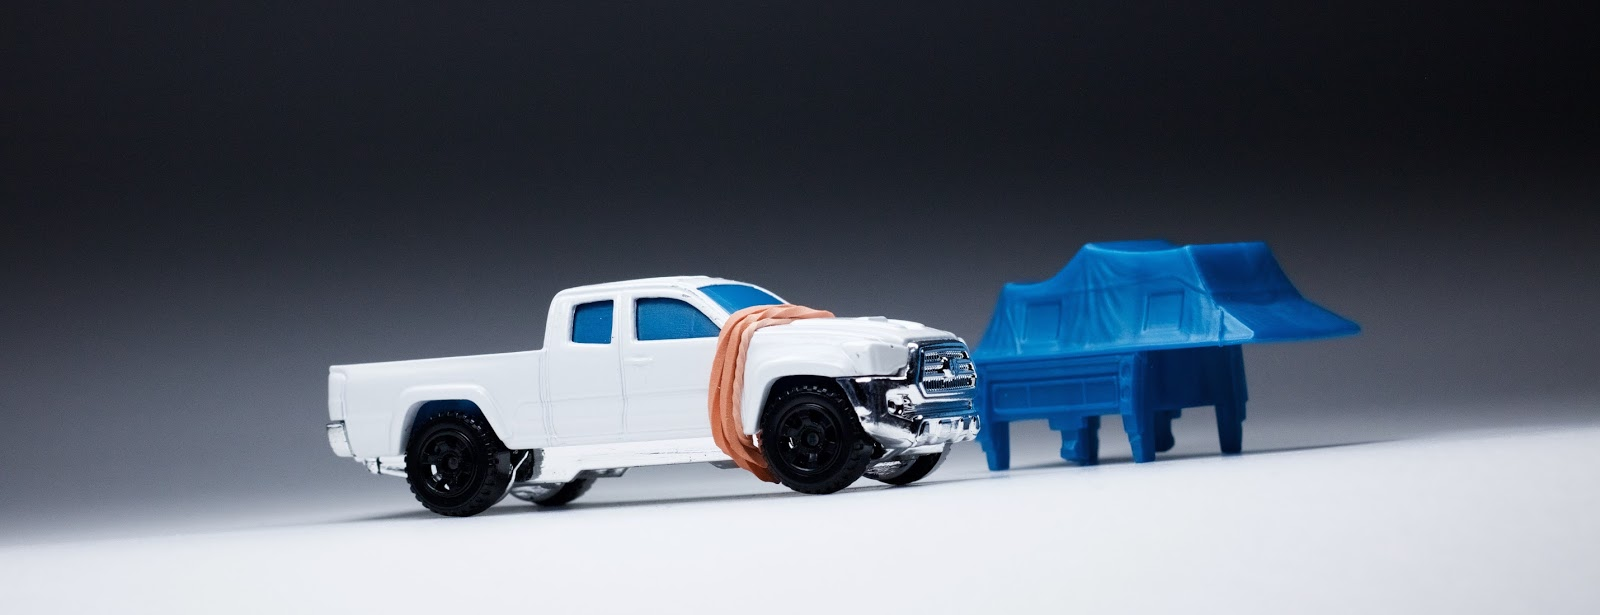 Matchbox 2017 Preview Part 2 16 Toyota Tacoma Fiat 500x Pickup Truck The Is Also A Surprise Seeing Isnt Surprising But Little More Obscure With Hot Wheels Already Producing Fairly Stock